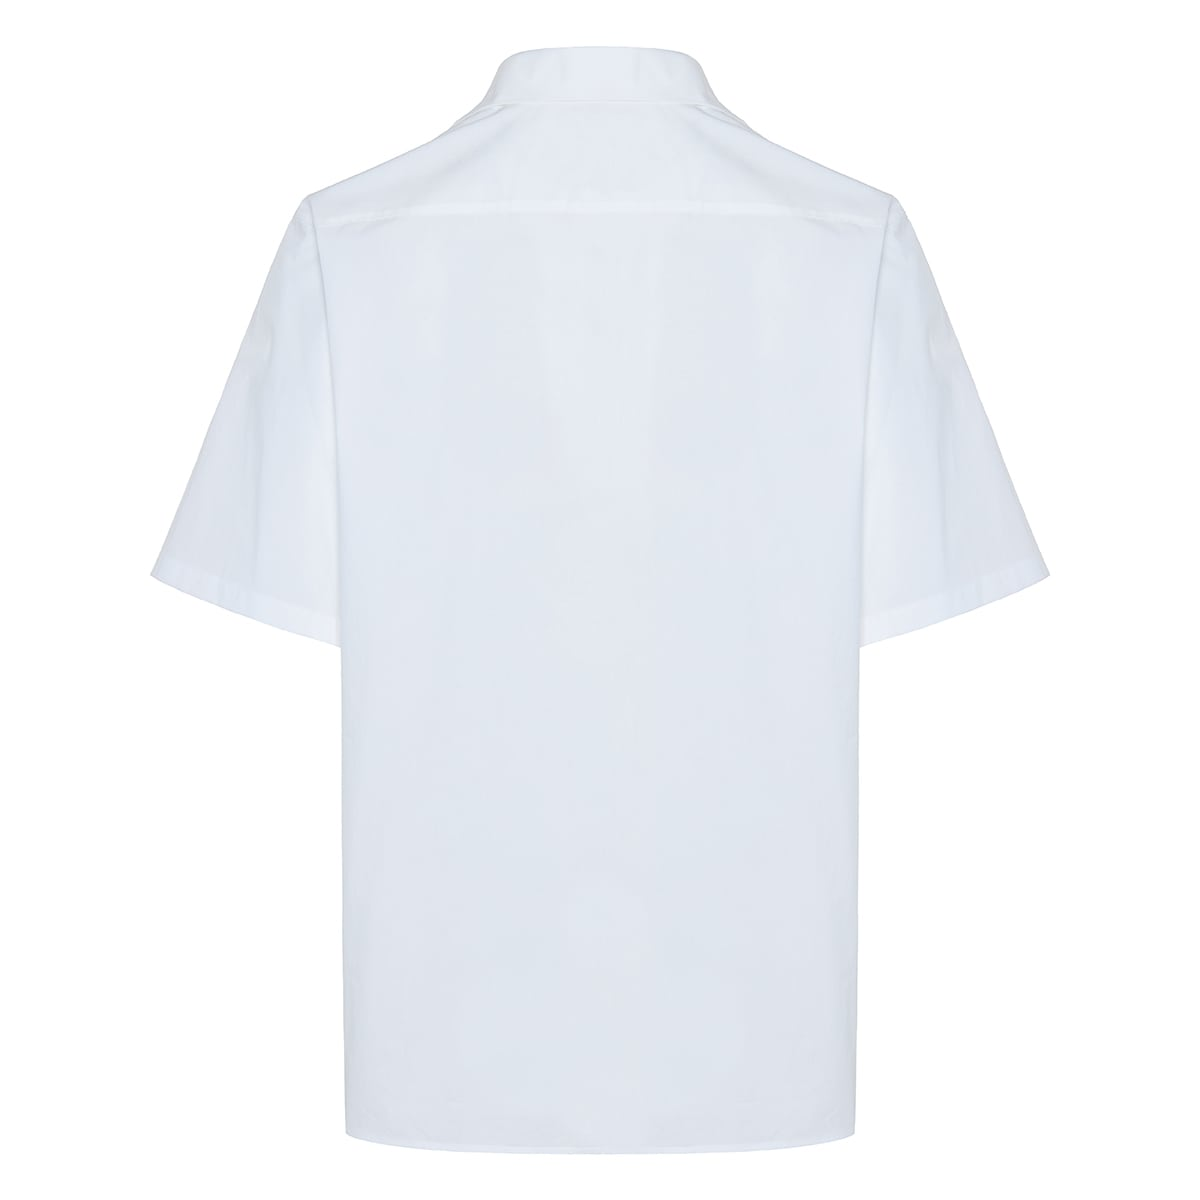 VLTN cotton shirt